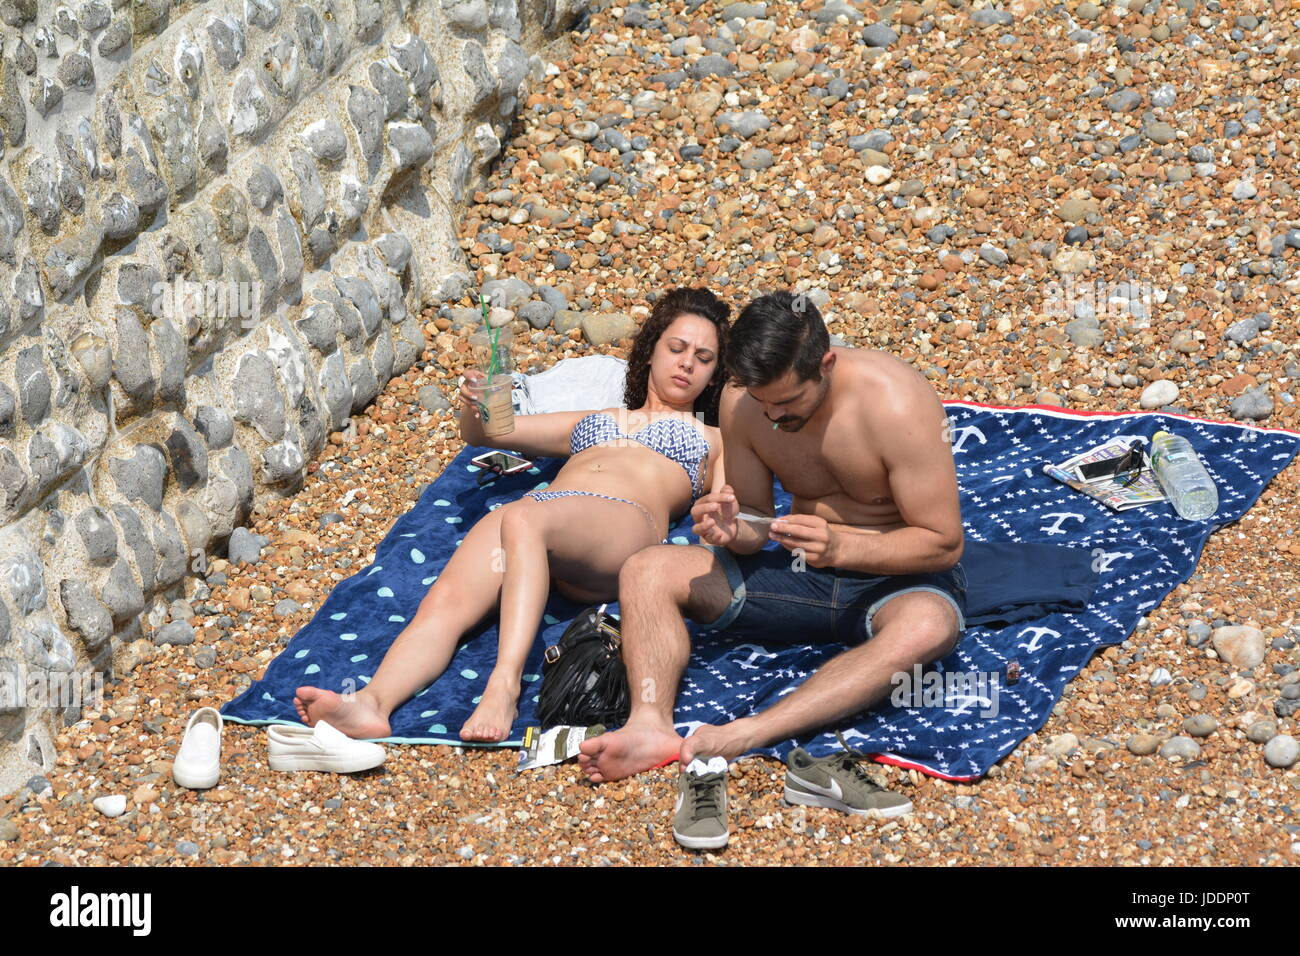 A couple sunbathing in a secluded area of a beach with the man using a mobile phone and woman looking on, in Summer - Stock Image